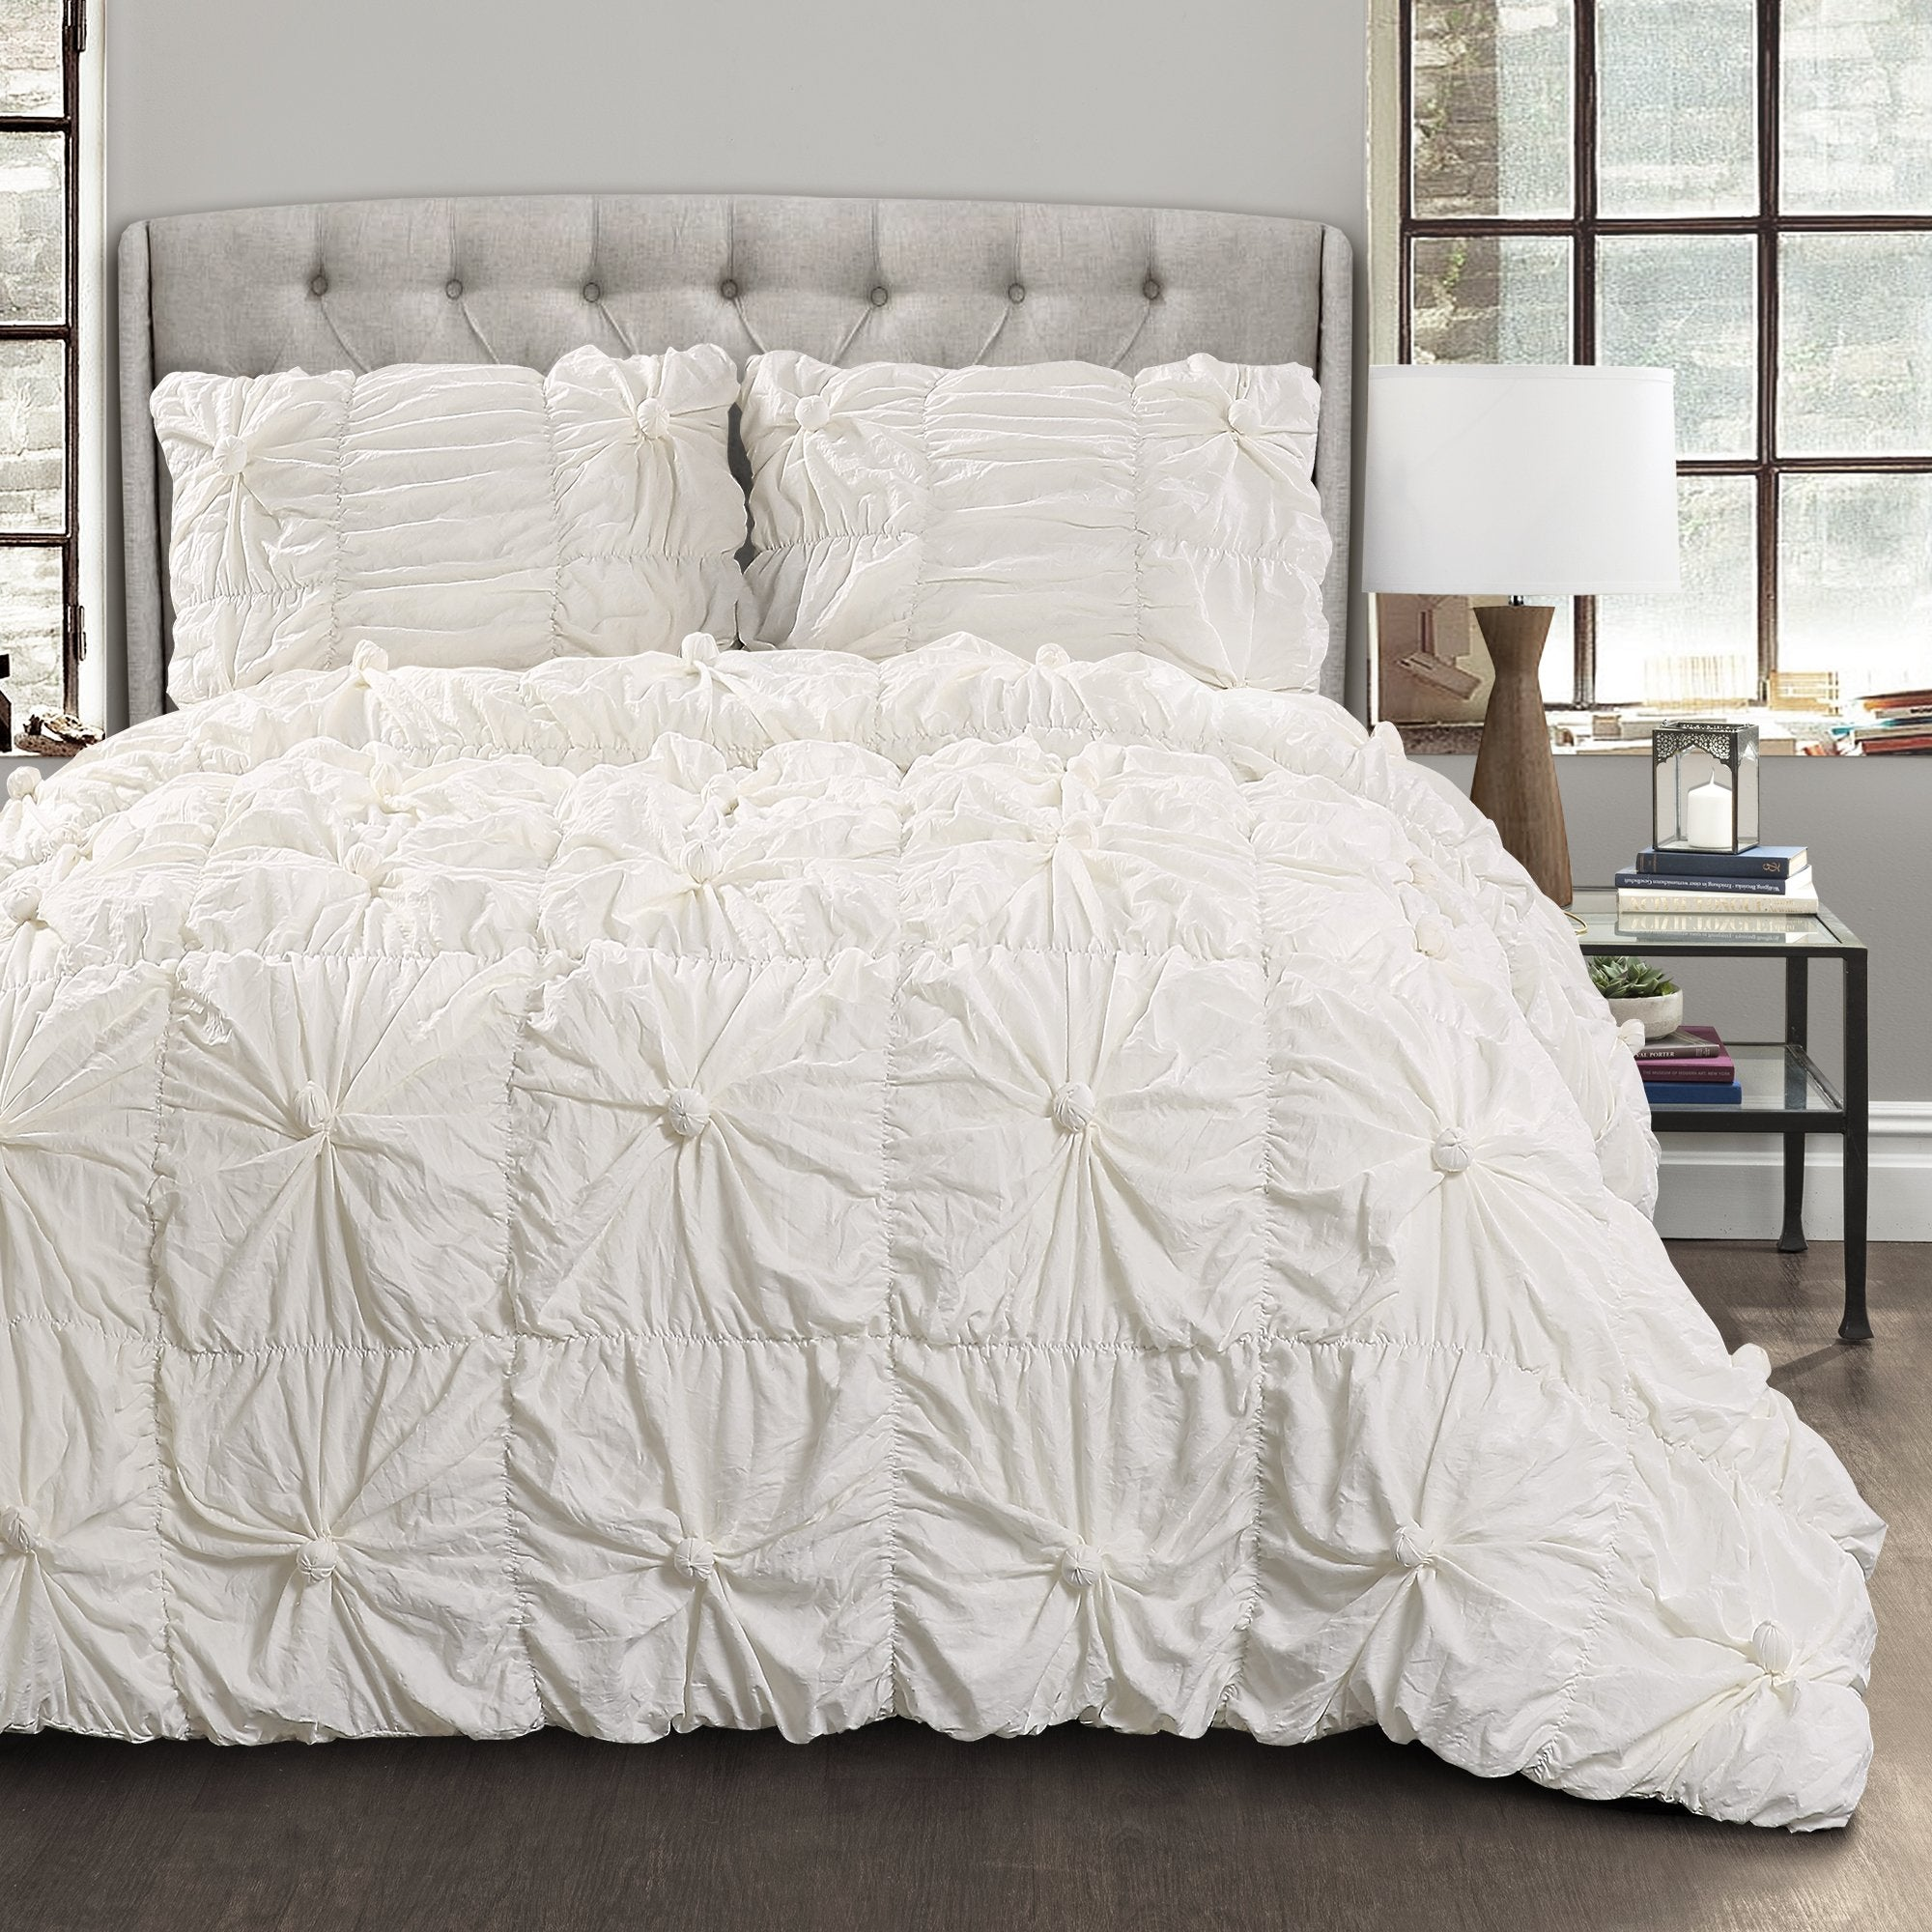 Bedding Bundle: Leah Quilt Set + Bella Comforter Set